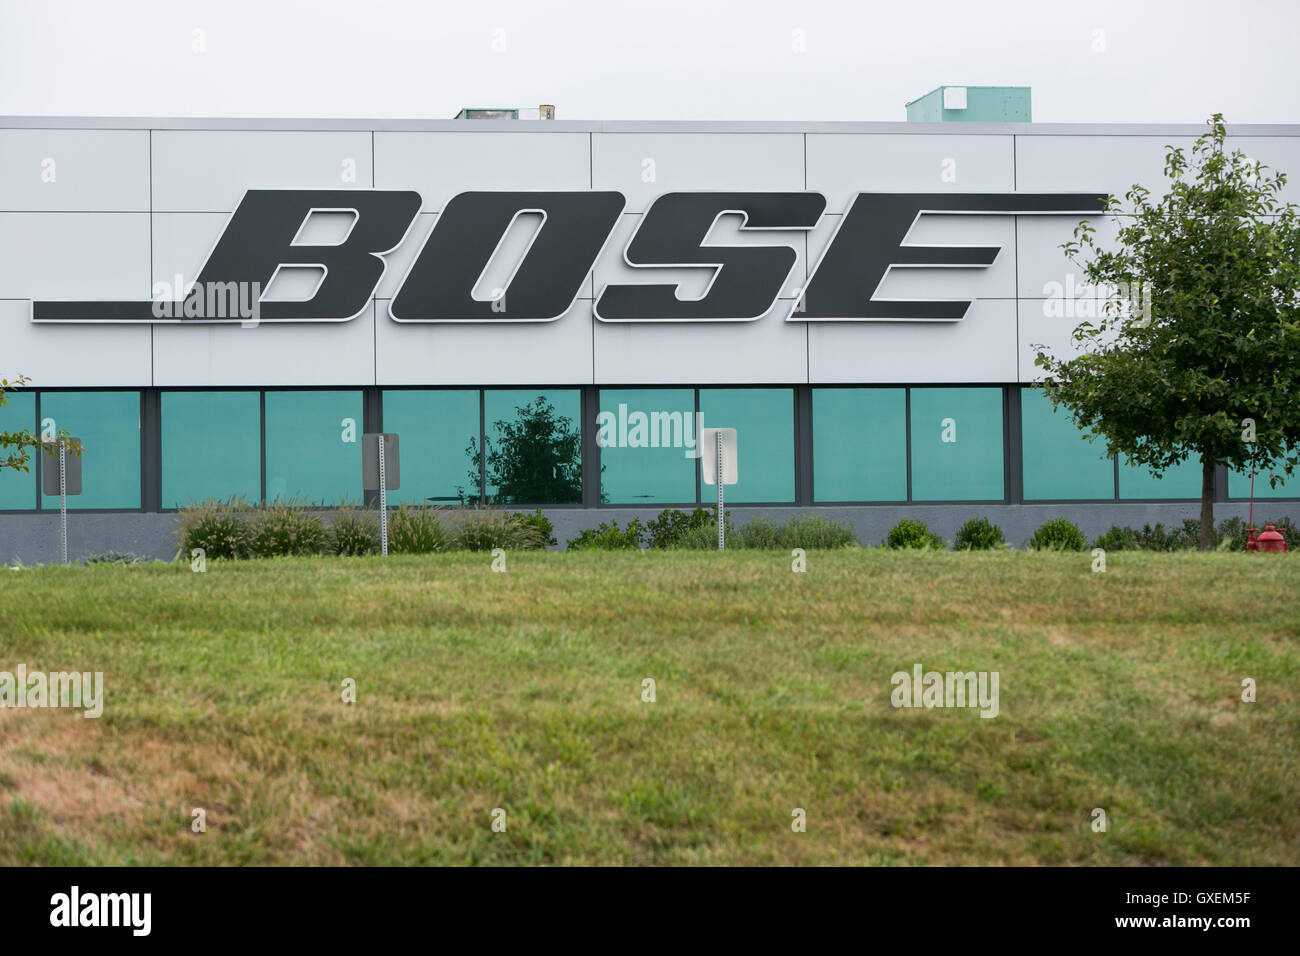 A logo sign outside of the headquarters of the Bose Corporation in Framingham, Massachusetts on August 13, 2016. - Stock Image